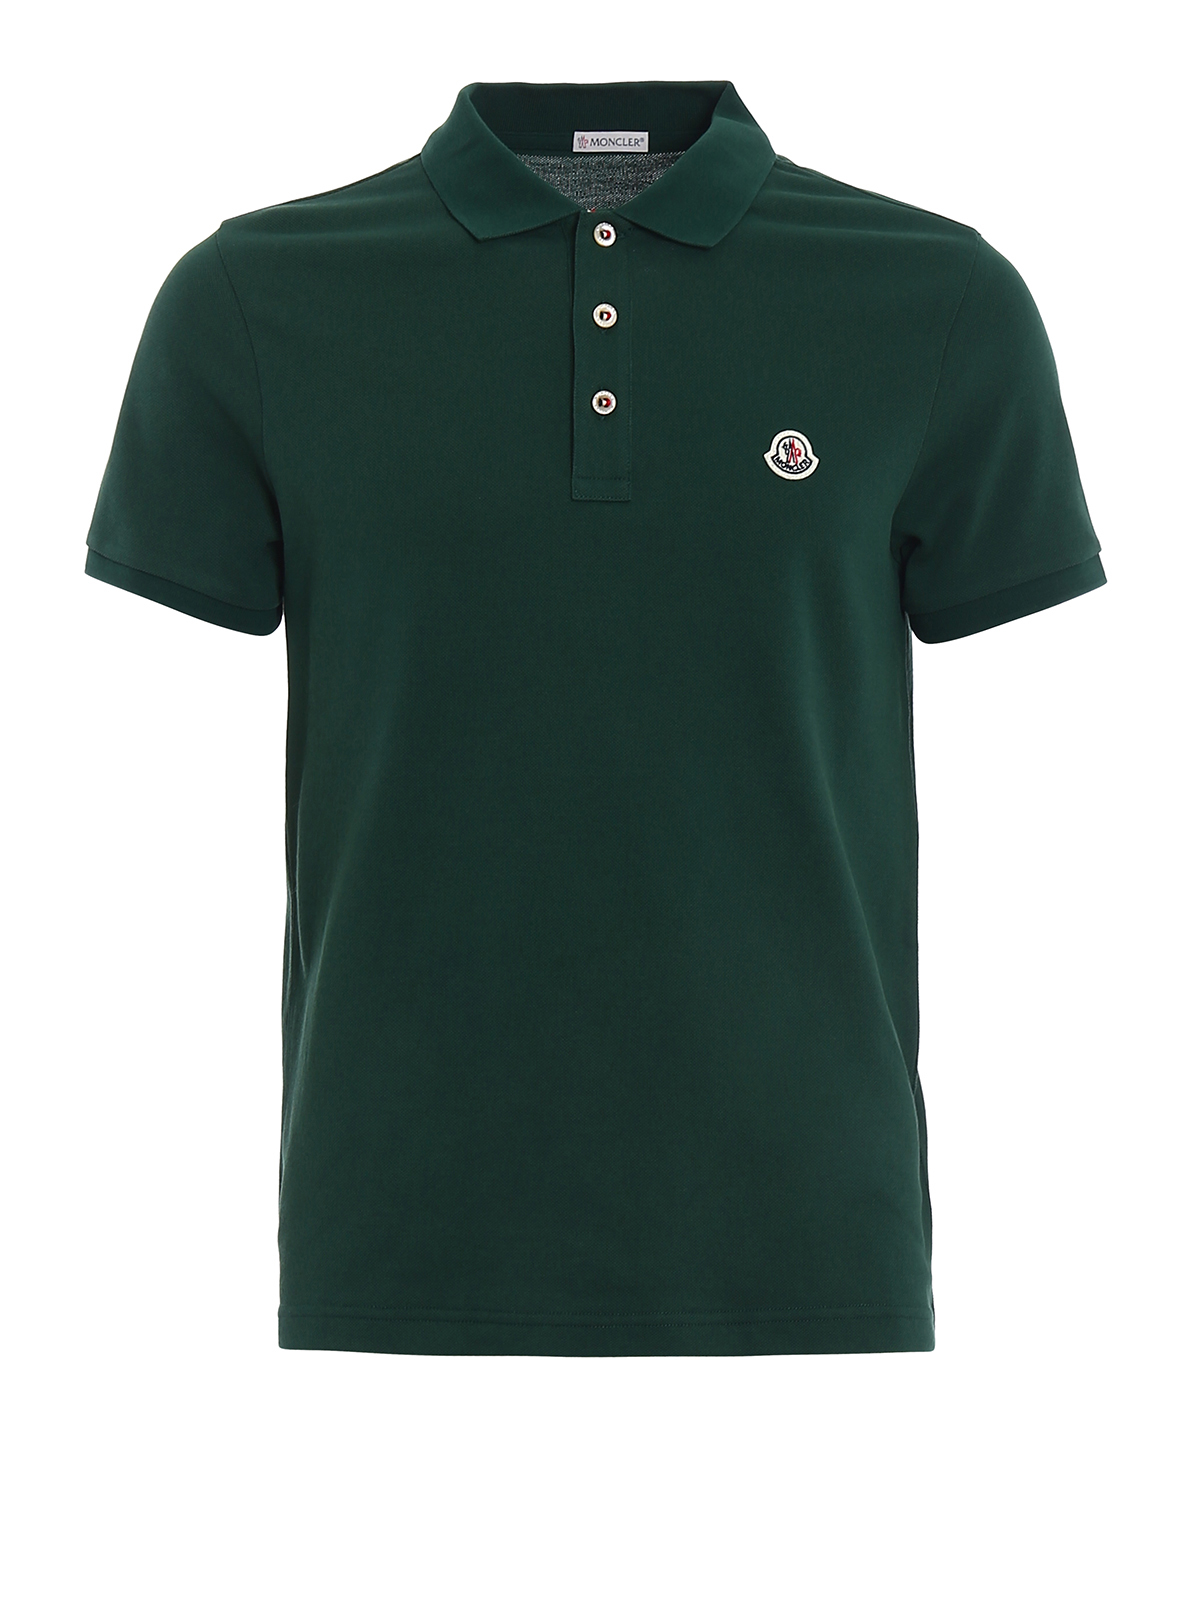 a4b32004e Moncler - Tricolour placket green polo shirt - polo shirts - D1 091 ...